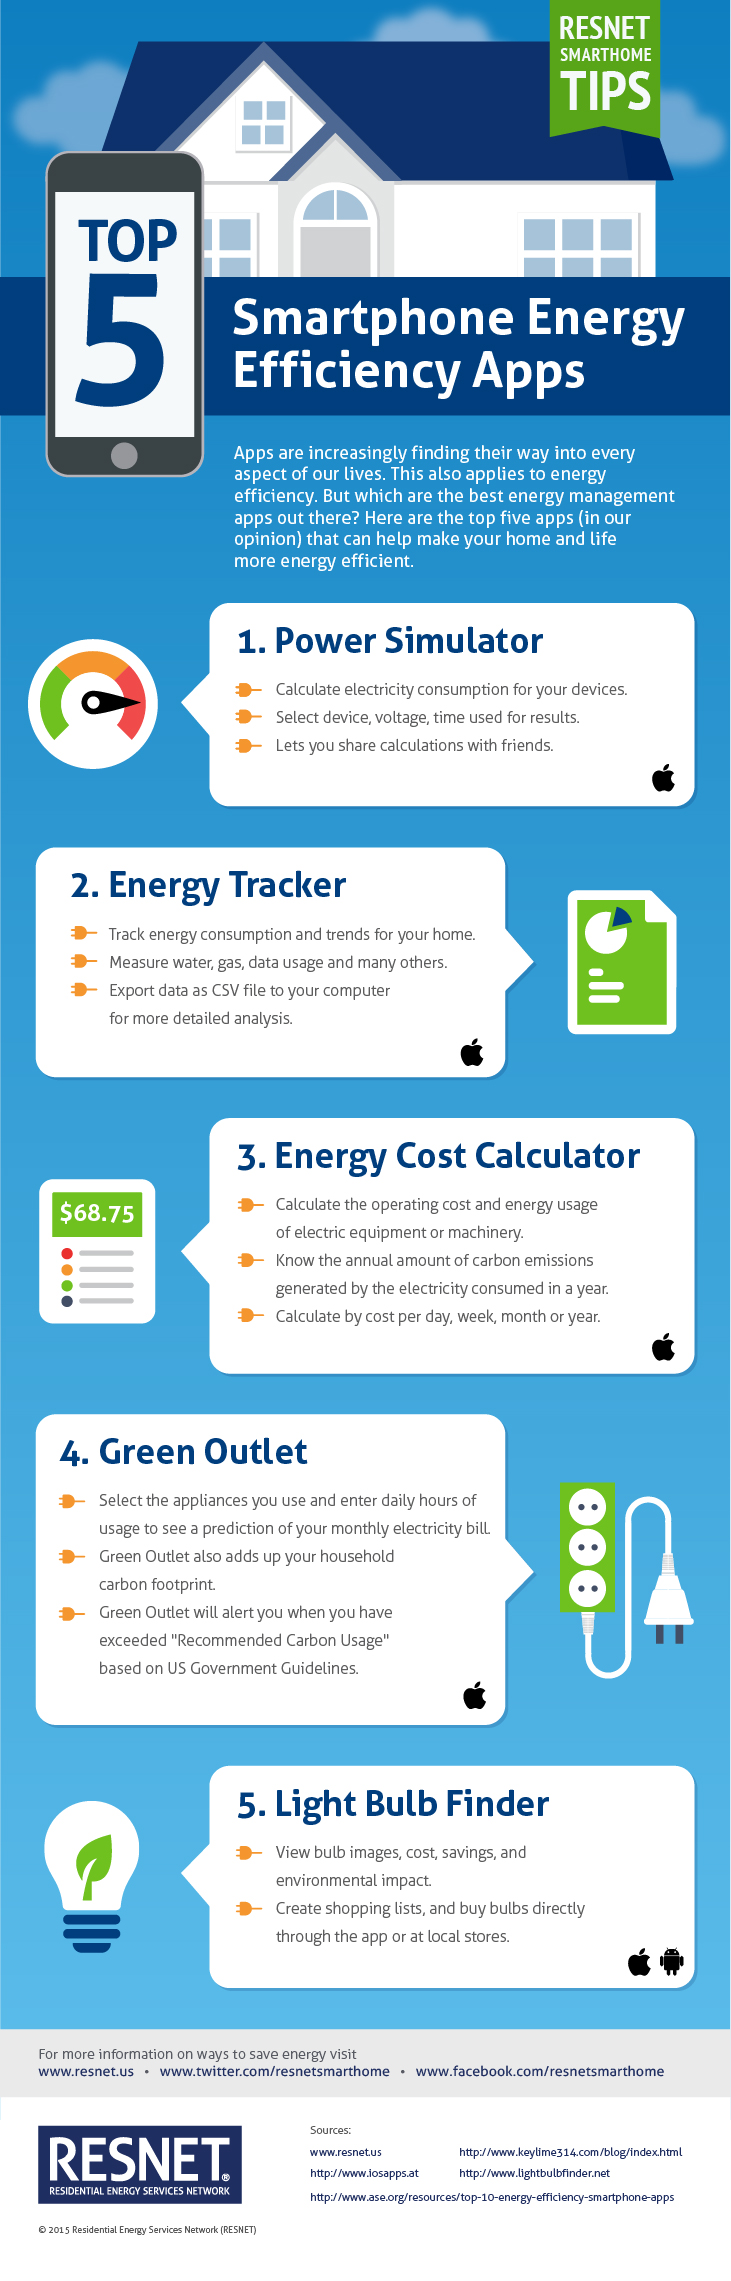 Top 5 energy efficiency apps articles resnet for Energy efficiency facts